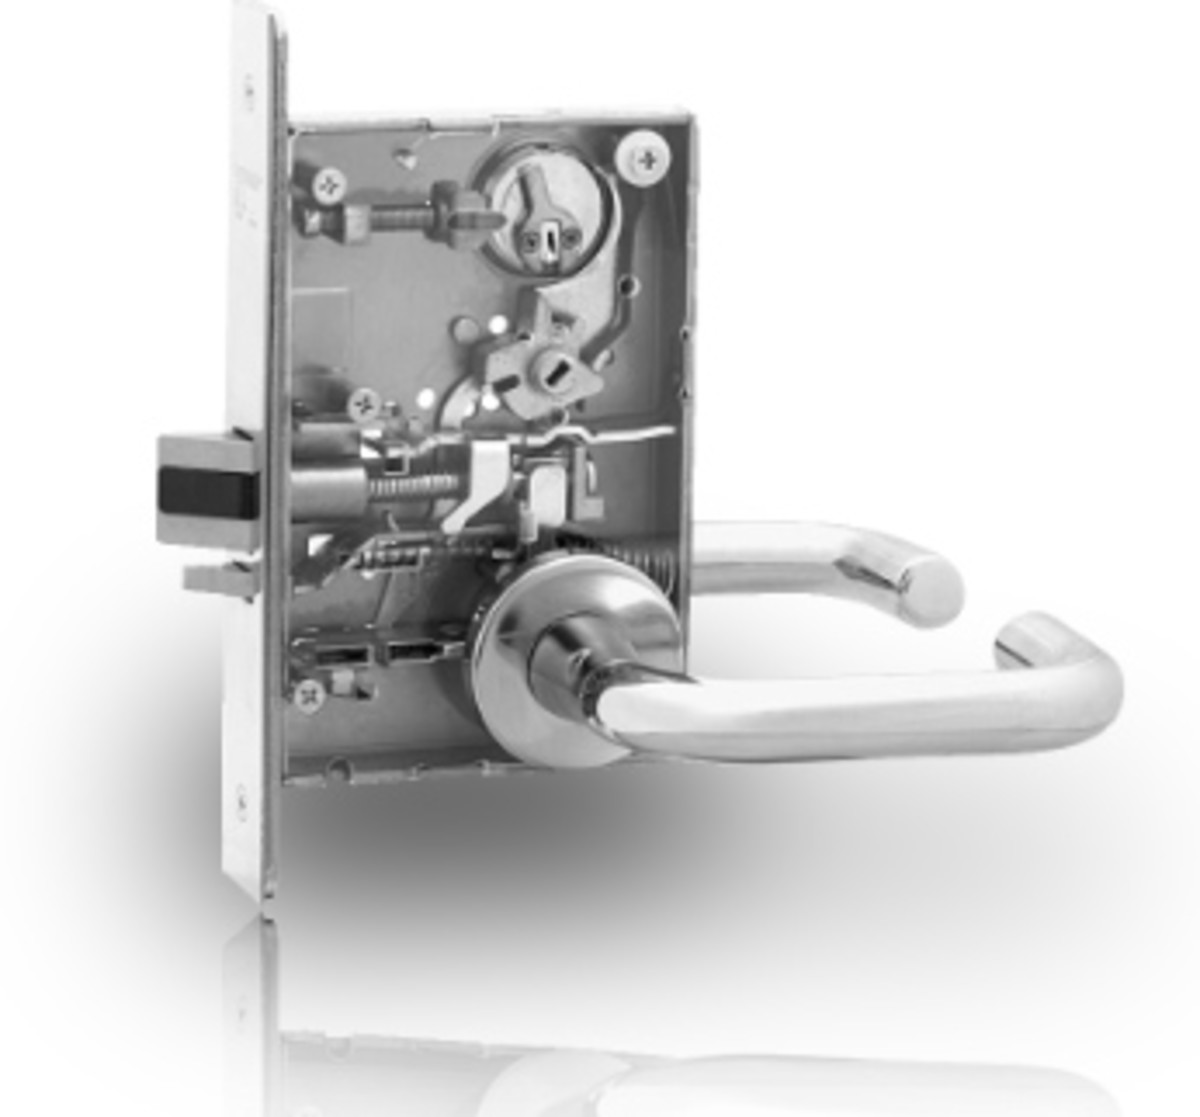 Sargent 8200 series mortise lock shown with the case cover off.  Looks like classroom function, perhaps?